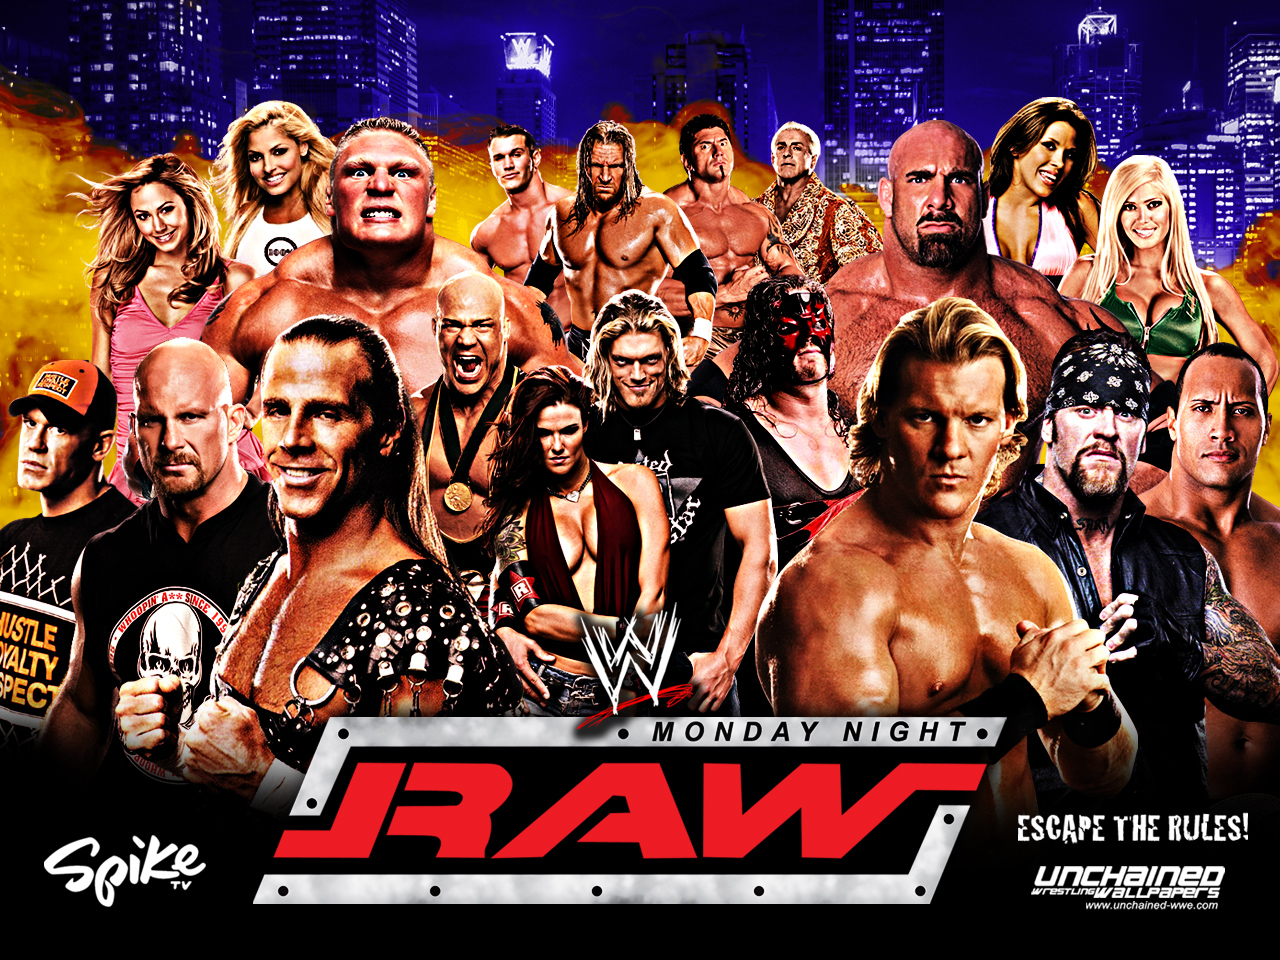 WWE WWE Monday Night Raw